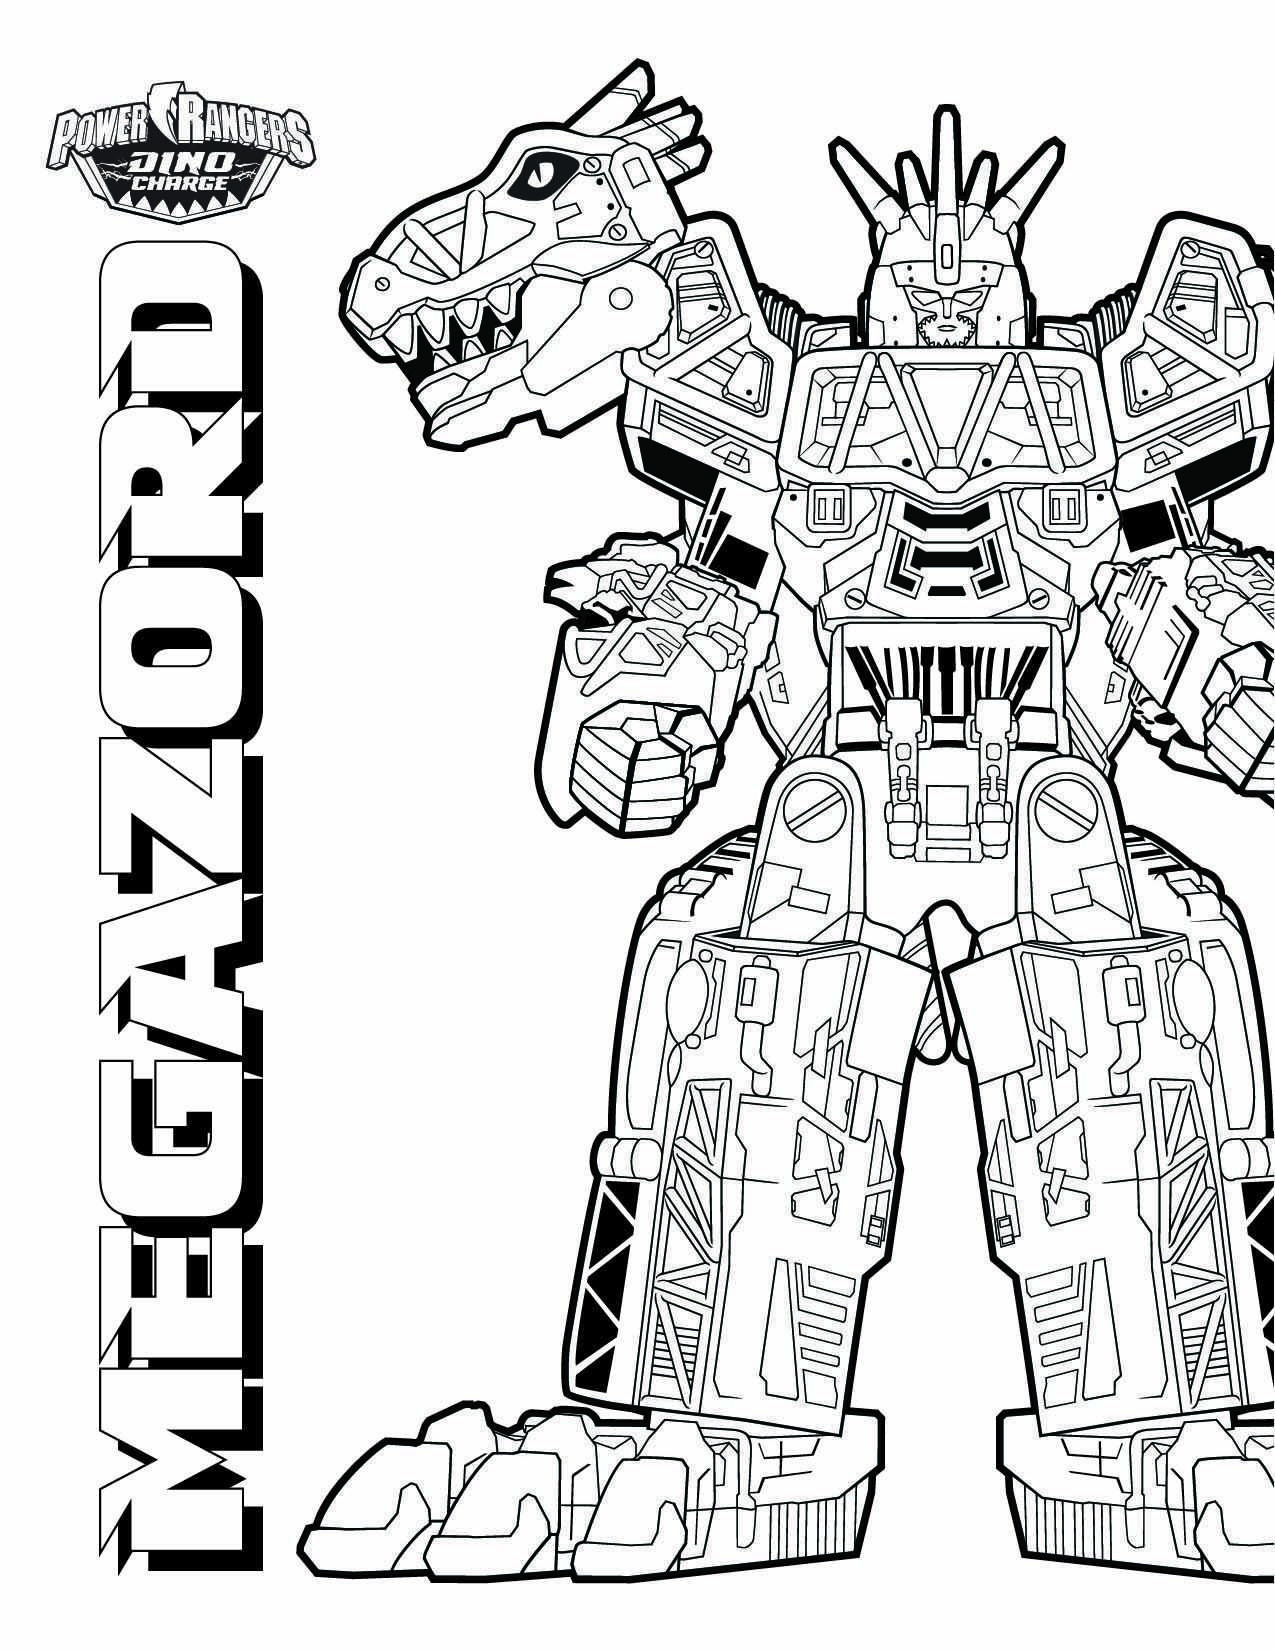 Megazord Download Them All Http Www Powerrangers Com Download Type Coloring Pages Power Rangers Para Colorir Desenhos Para Colorir Power Rangers